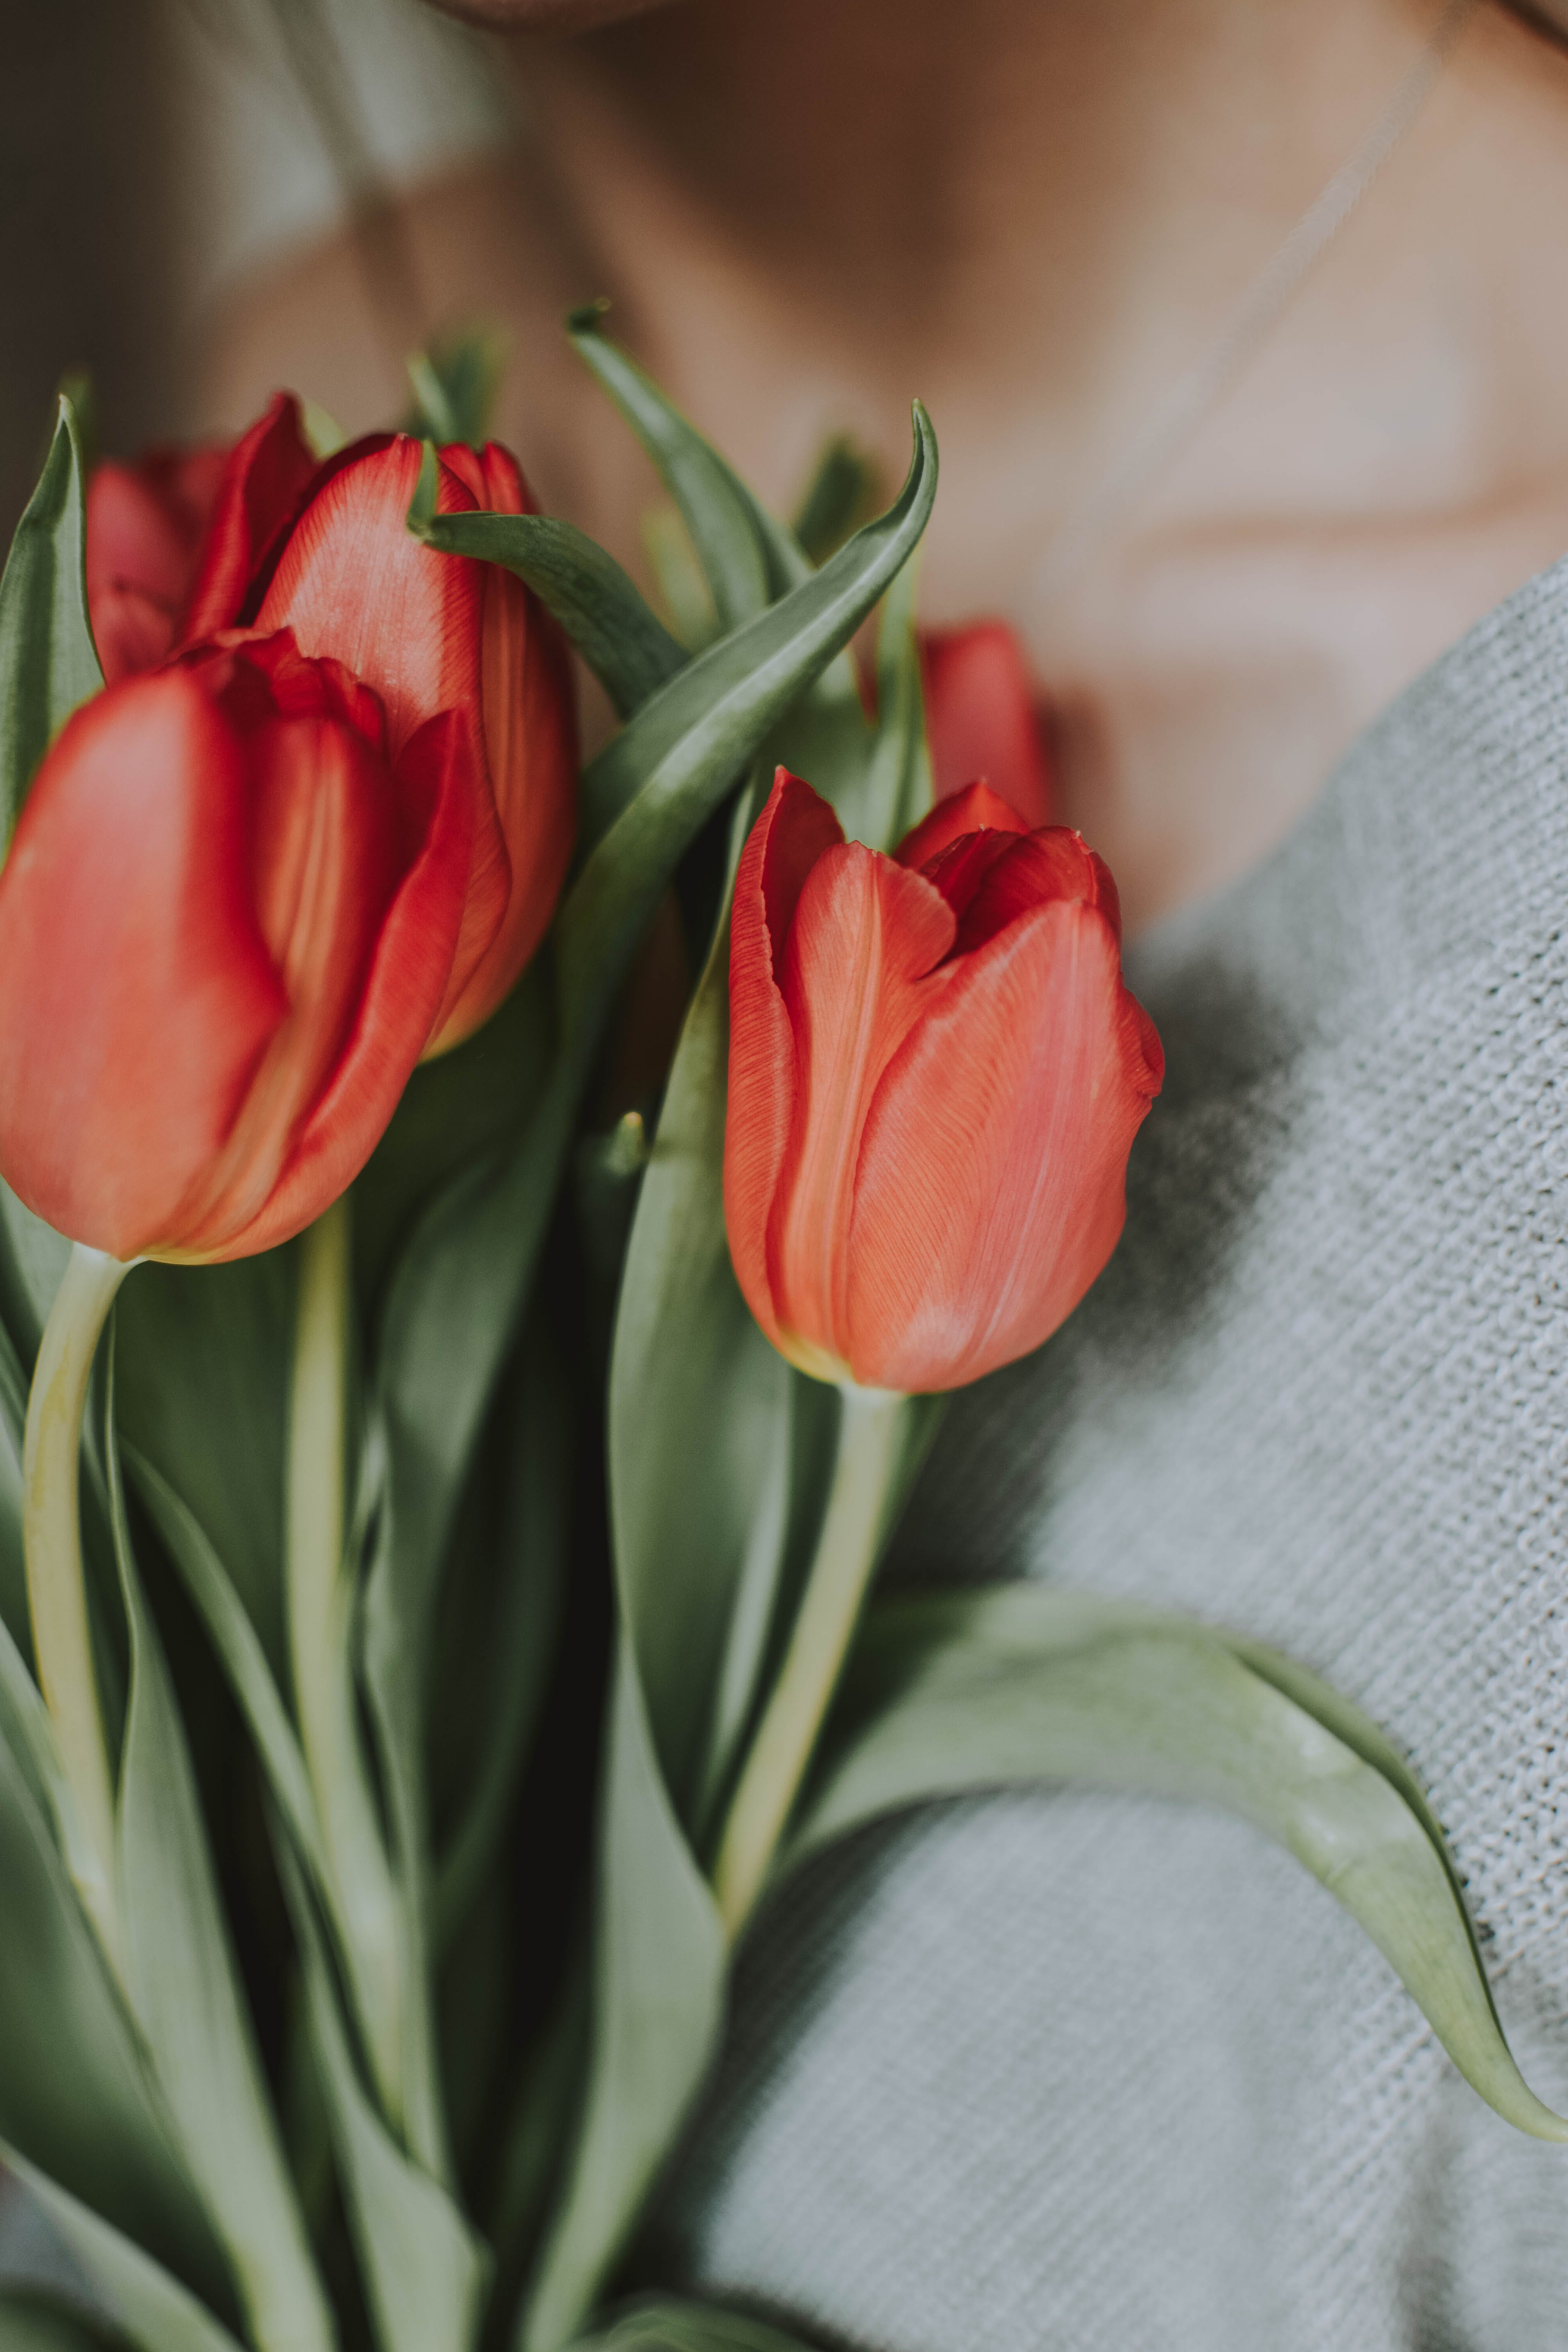 Close-Up Photo of Person Holding Red Tulips